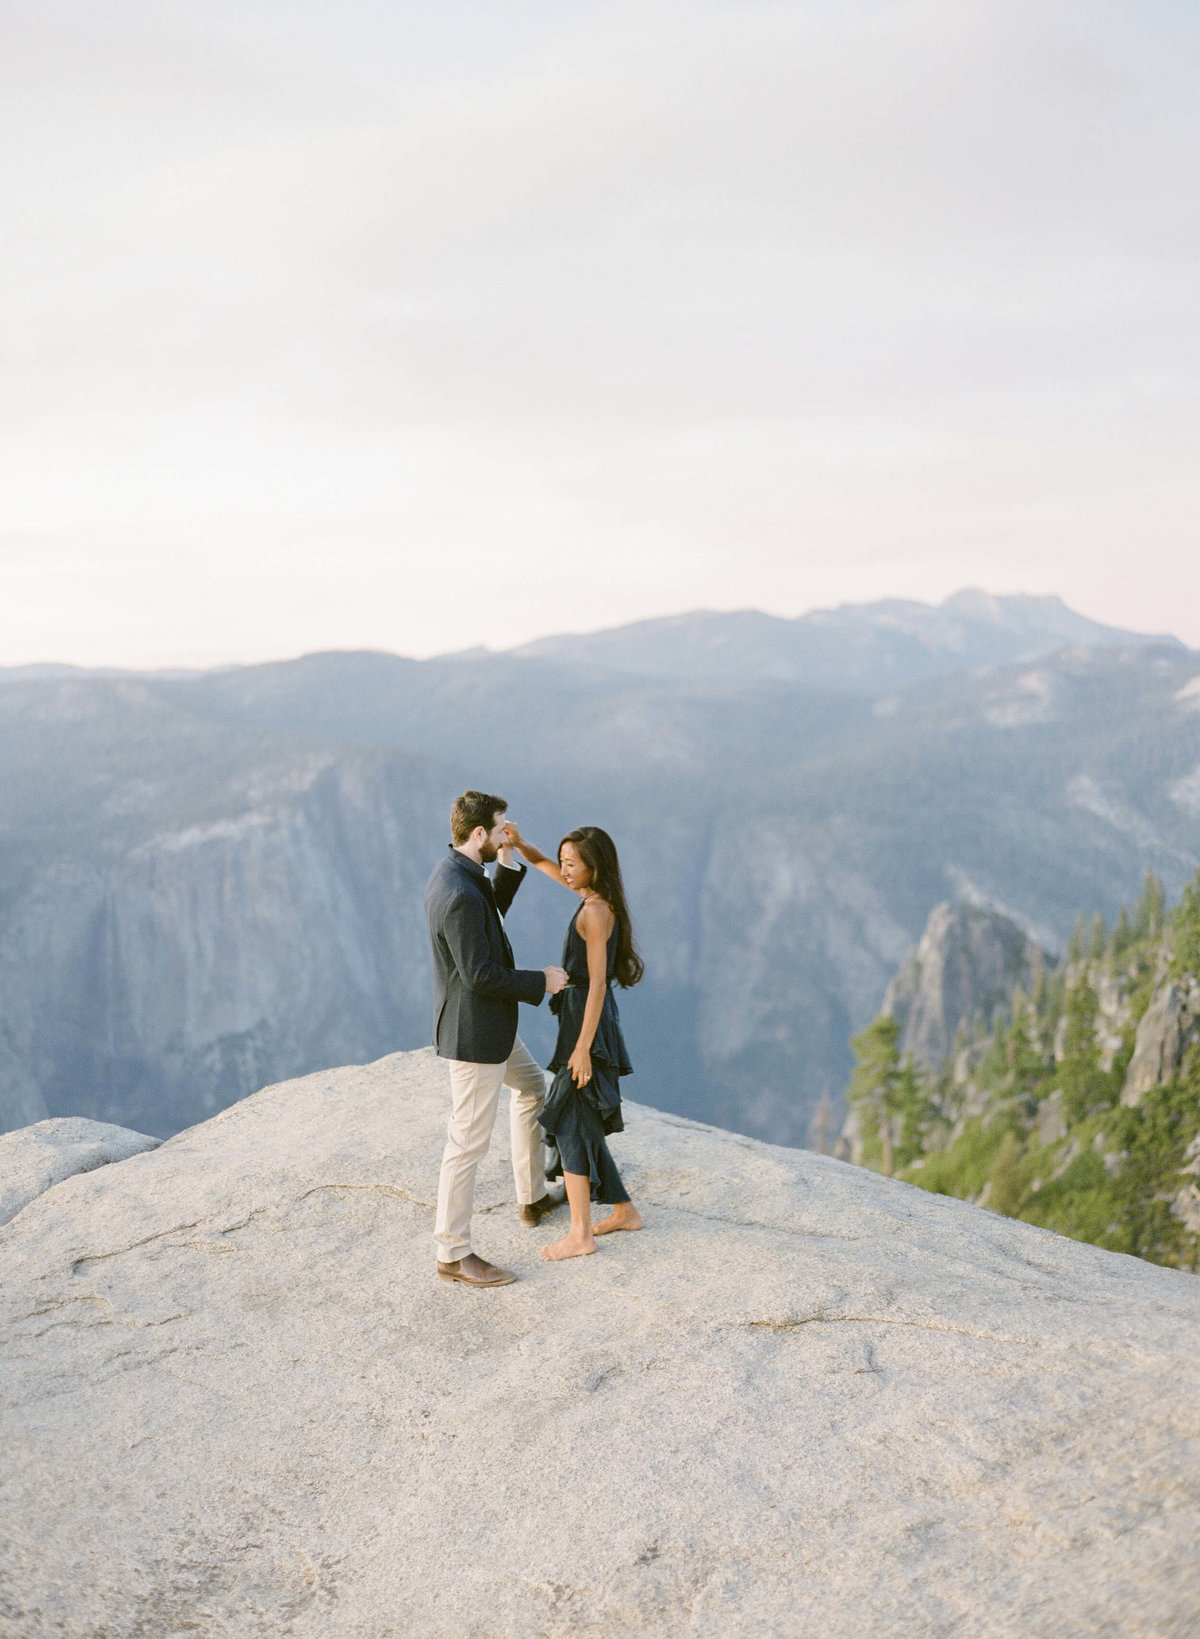 85-KTMerry-destination-engagement-photography-Yosemite-couple-dancing